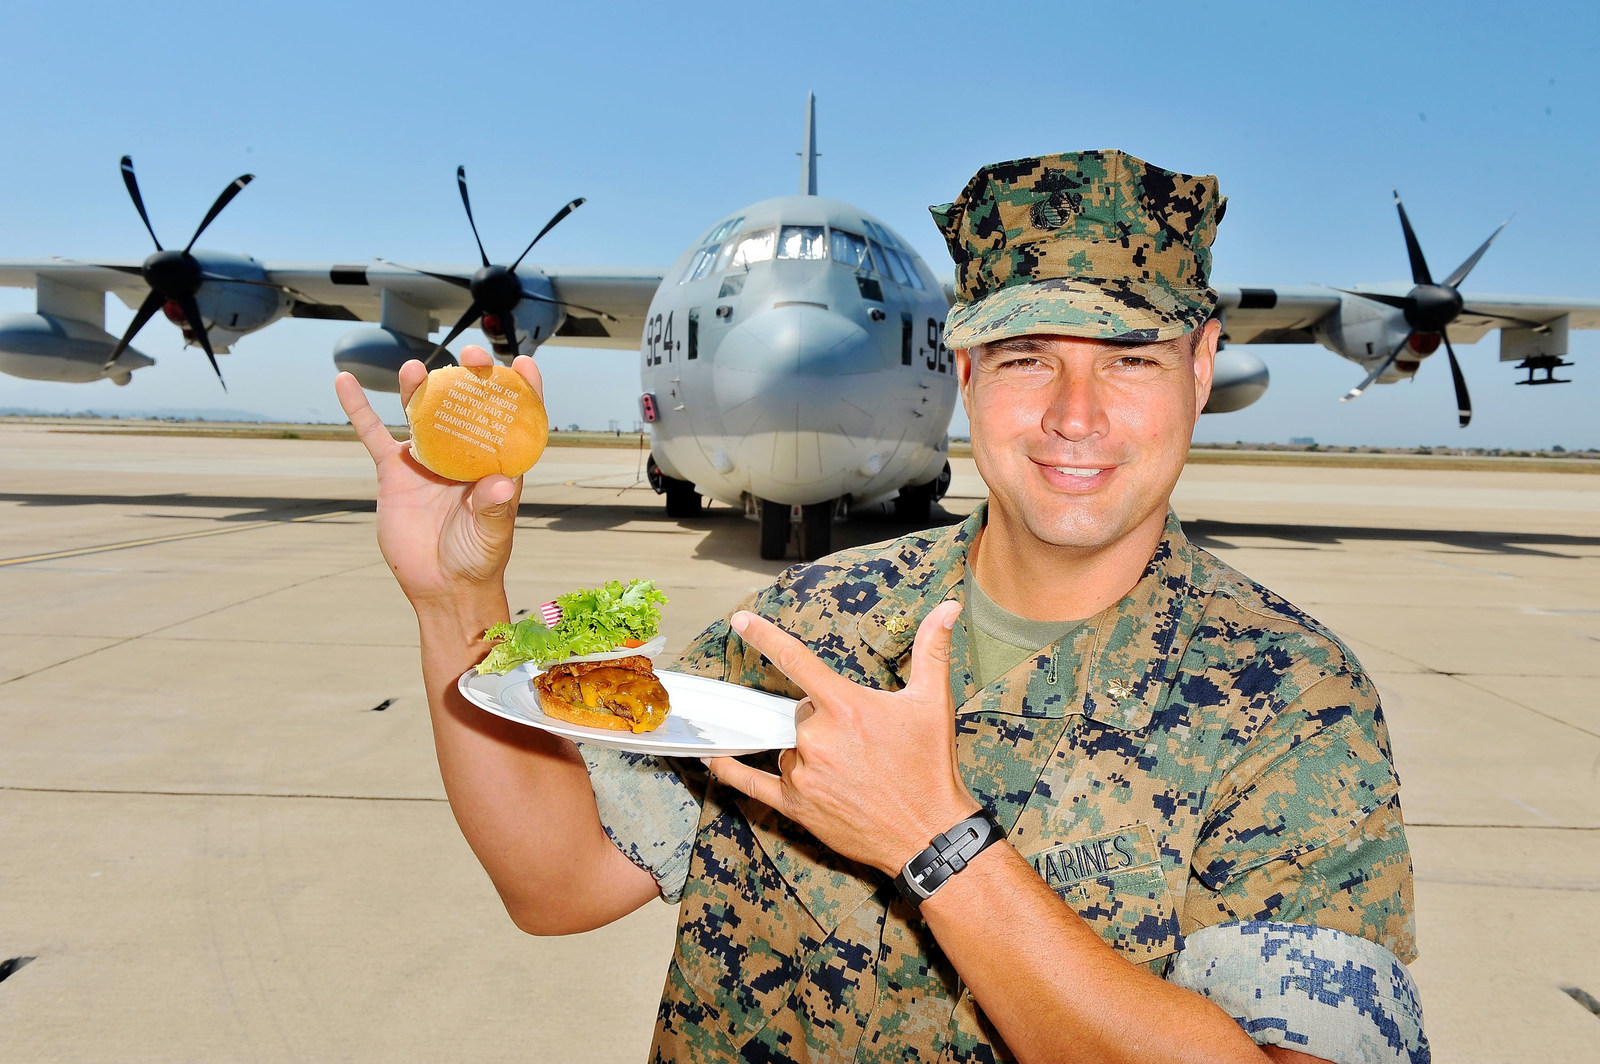 Αποτέλεσμα εικόνας για Carnival Cruise Line Thanks the Troops with the World's First Social Media Powered Barbecue at Marine Corps Air Station Miramar in San Diego